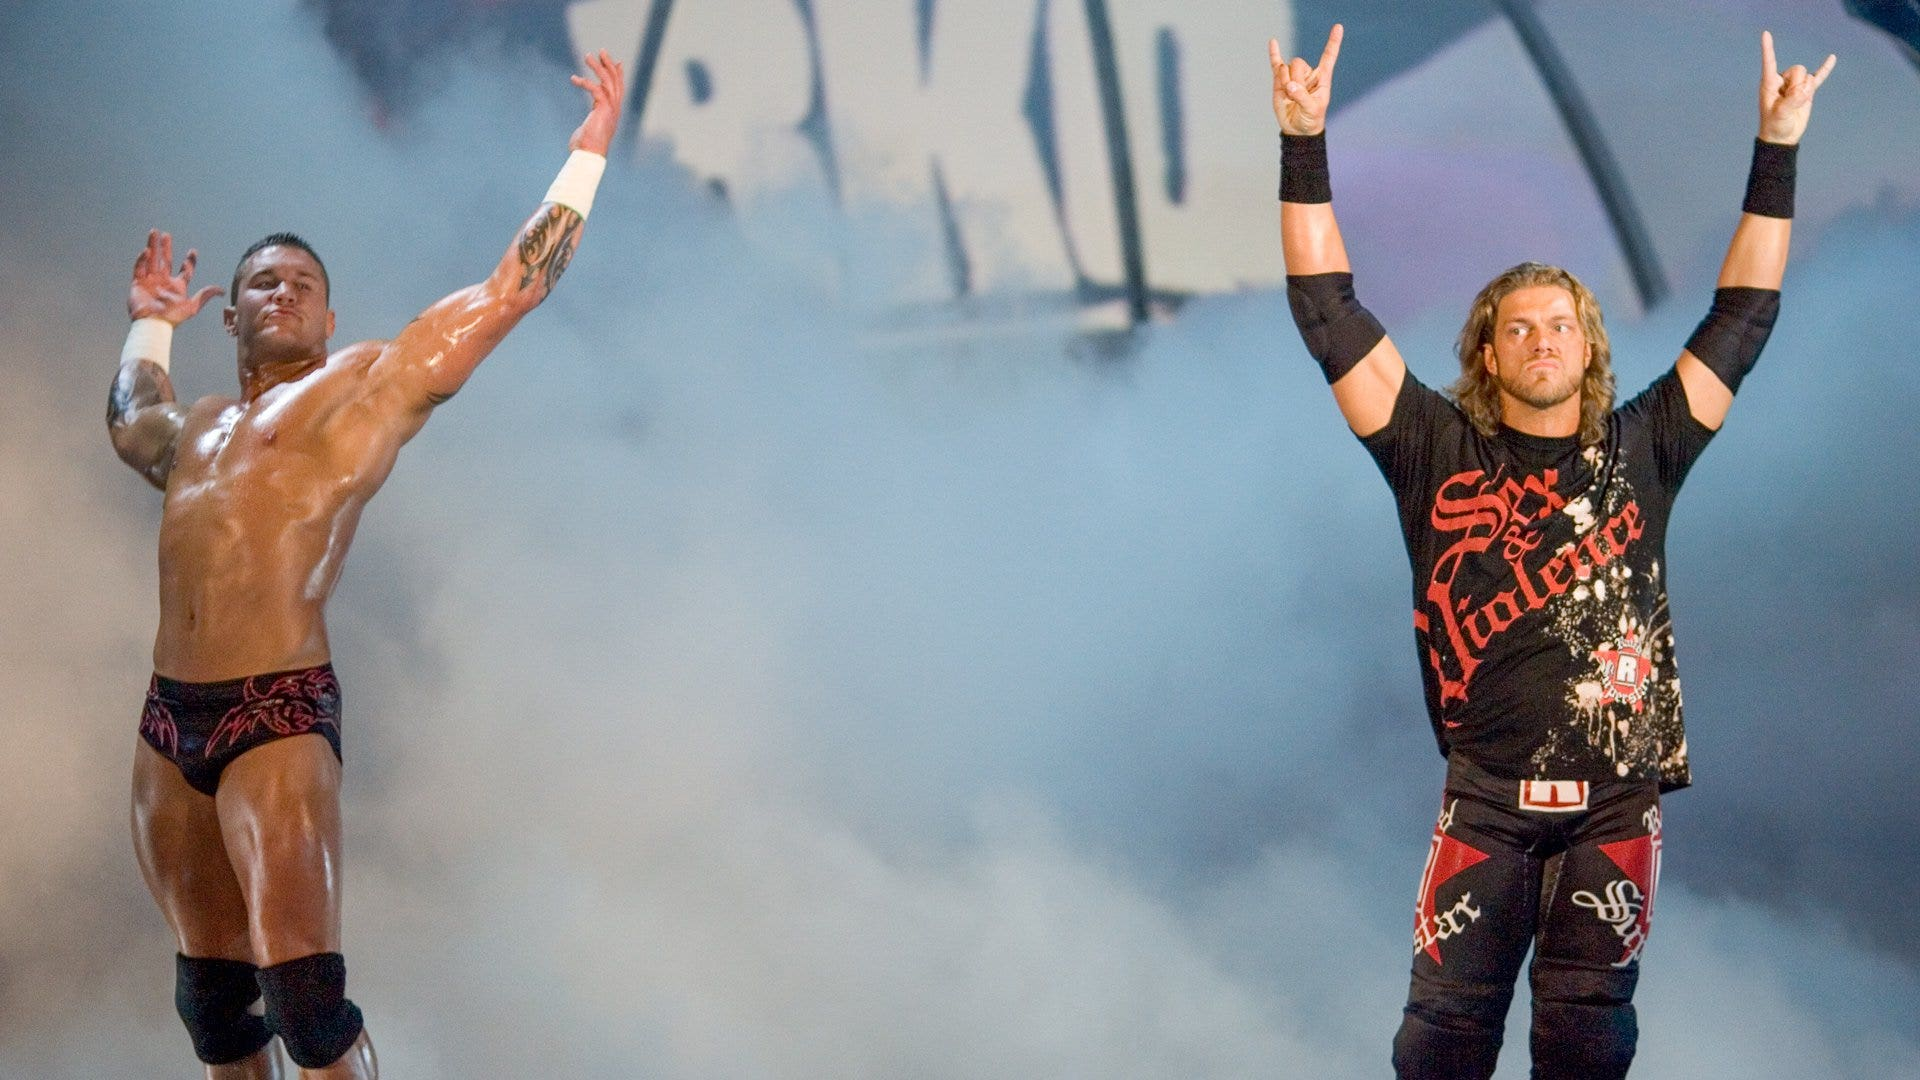 Edge Wanted To Reform Rated RKO With Randy Orton Upon WWE Return 2